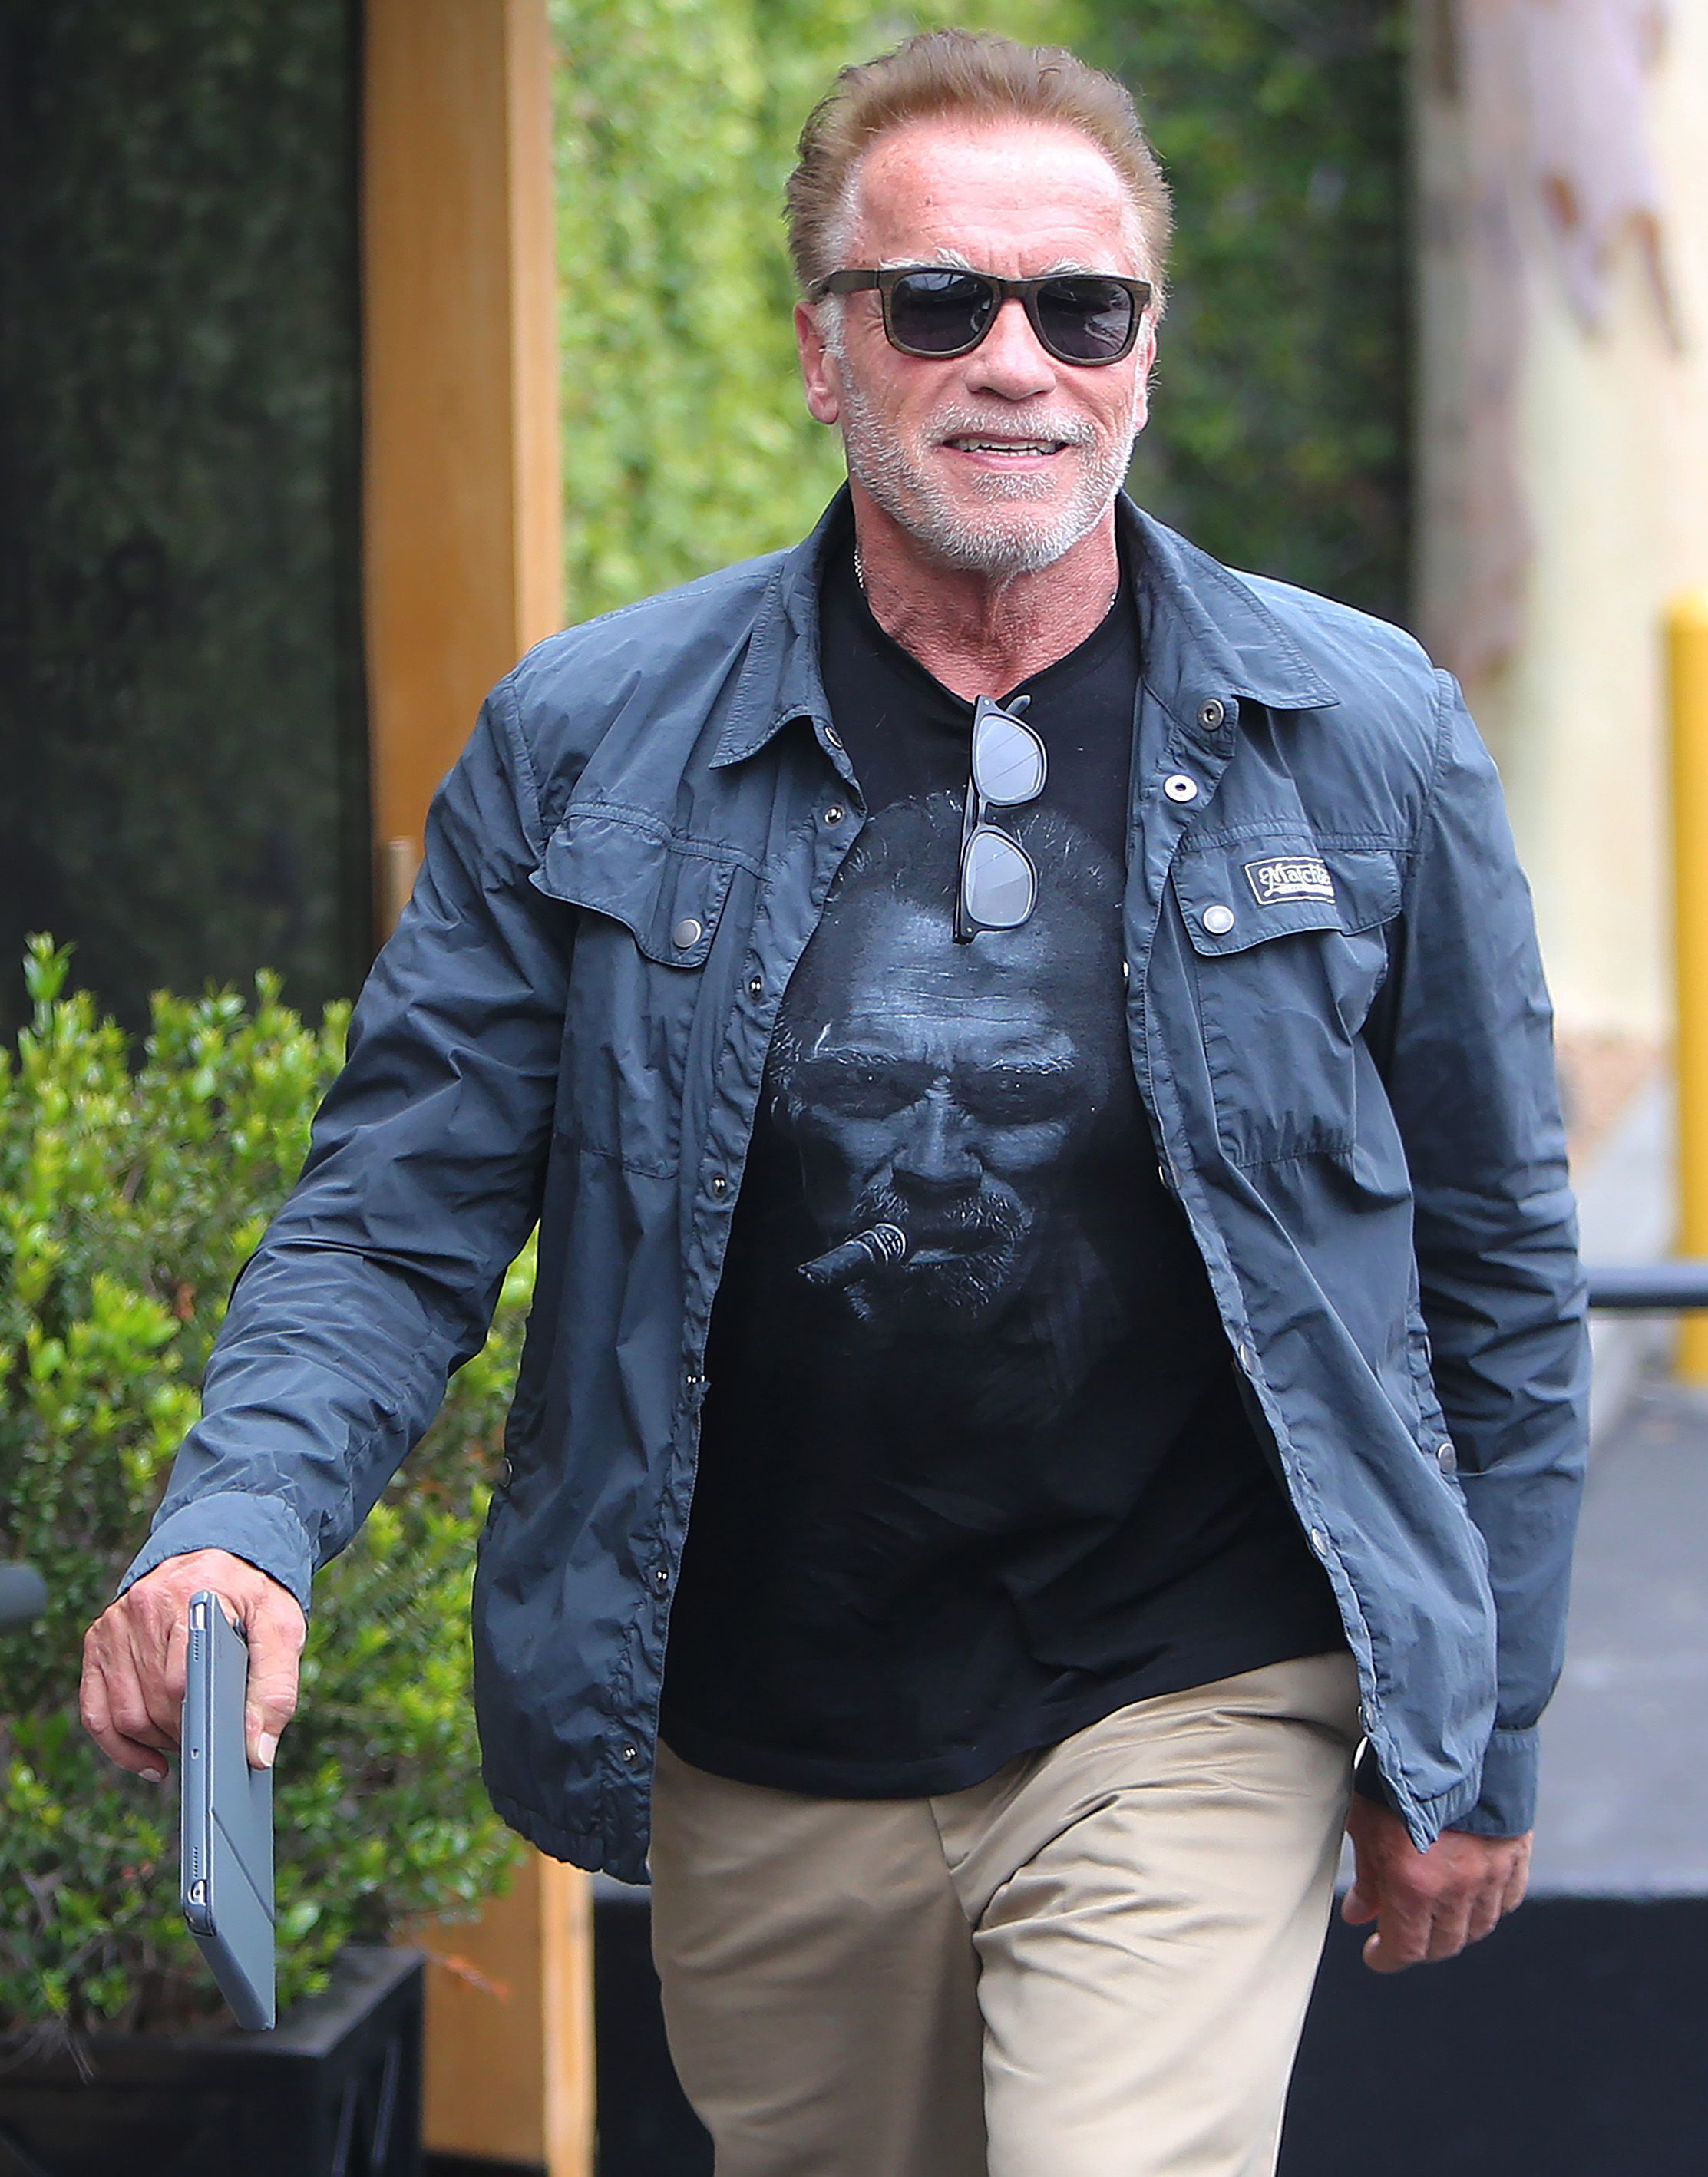 Arnold Schwarzenegger is out and about in Los Angeles on June 6, 2019.